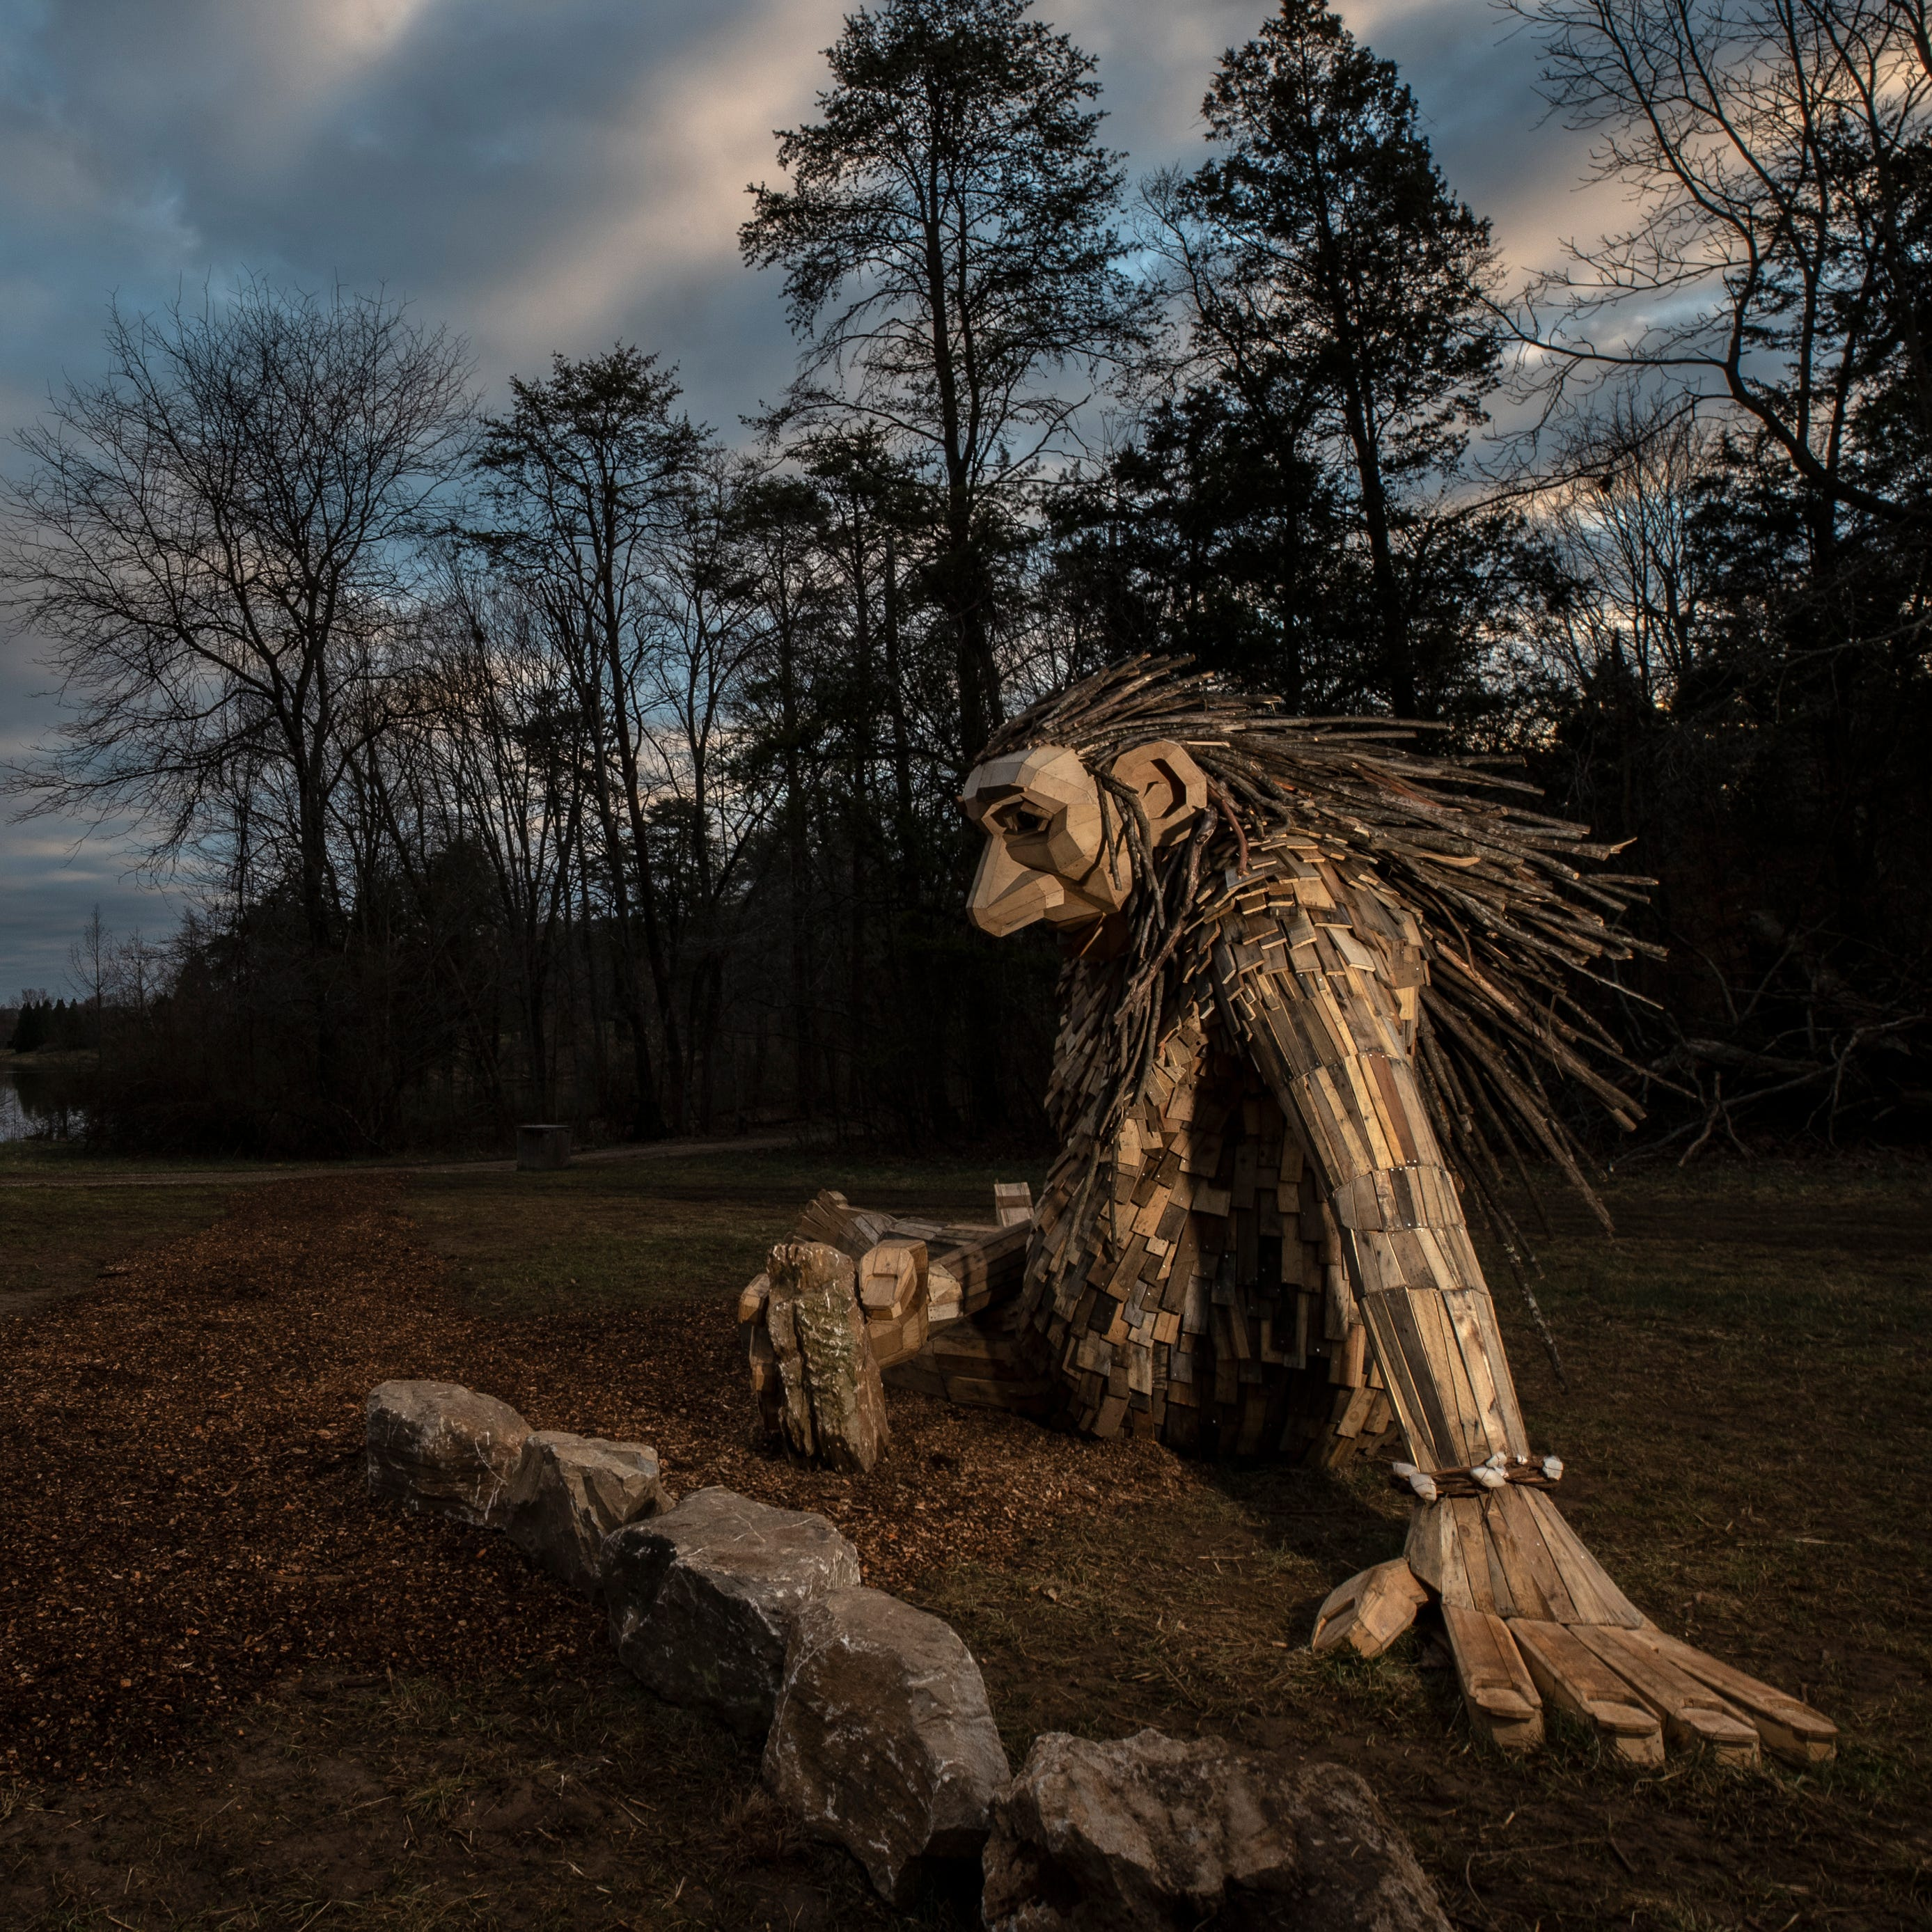 This forest in Kentucky is now home to giant, magical trolls